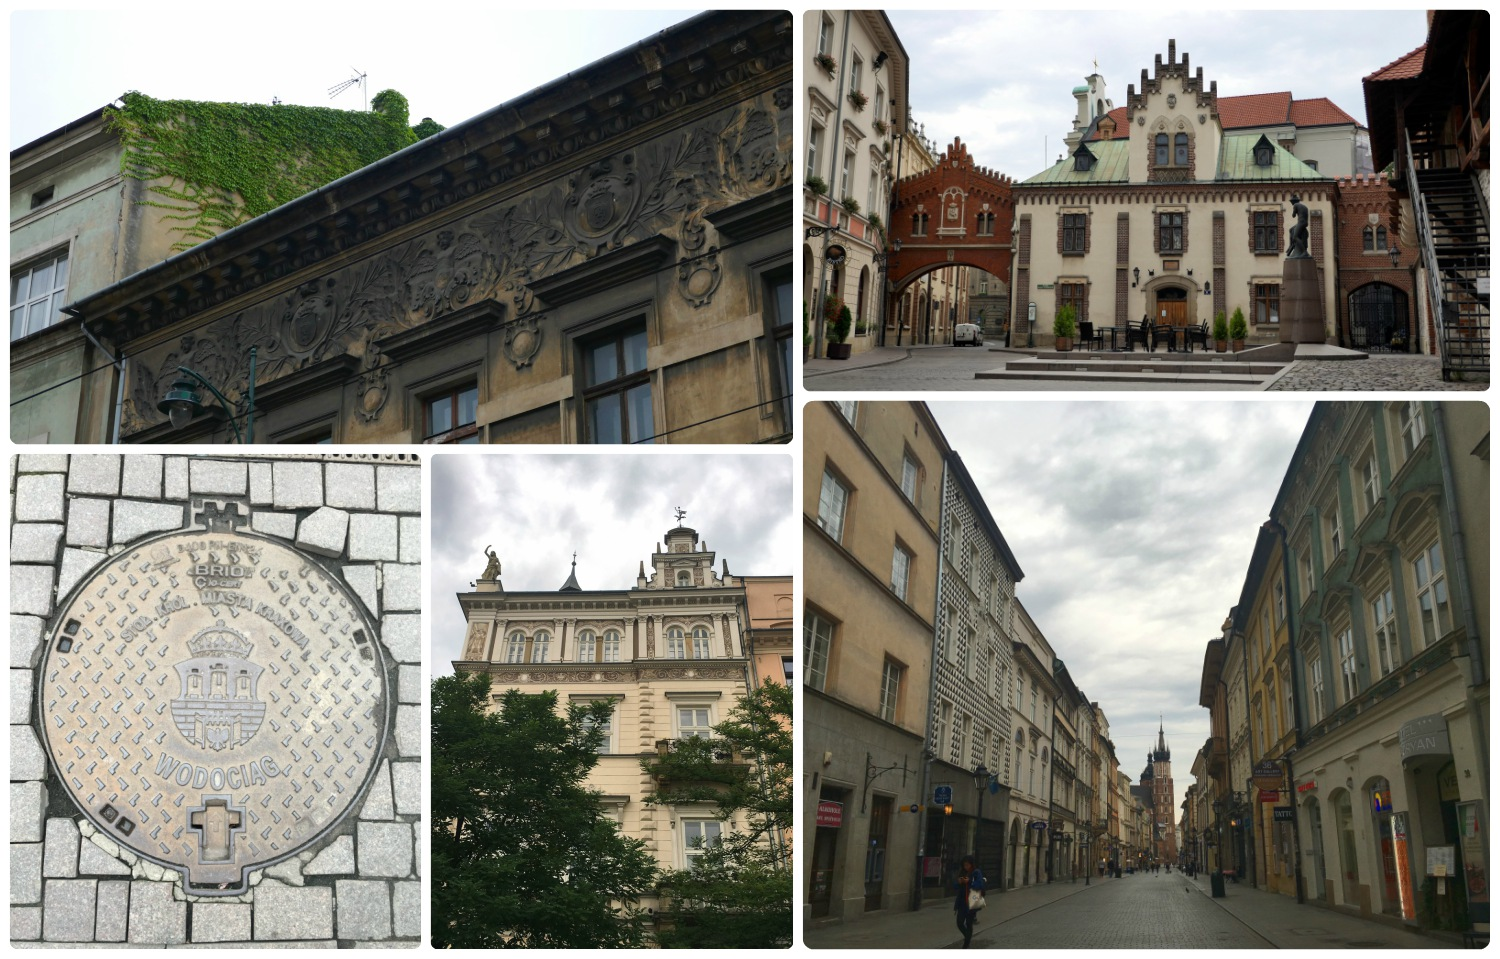 When we were walking around Krakow, Poland, we were sure to look in all directions because the buildings were so beautiful!